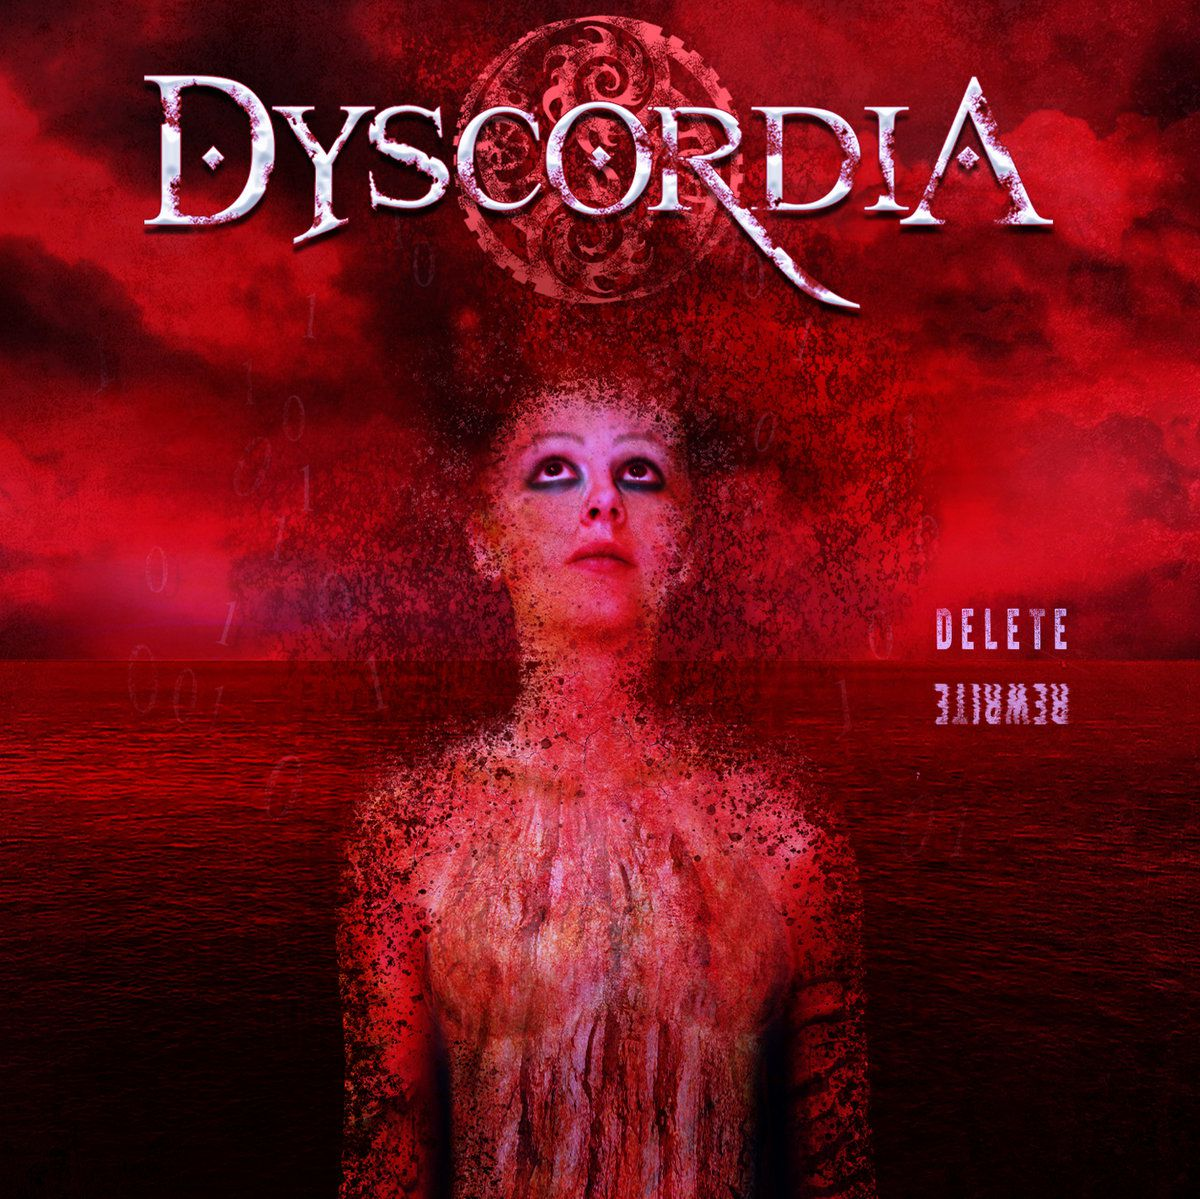 dyscordia delete rewrite album cover